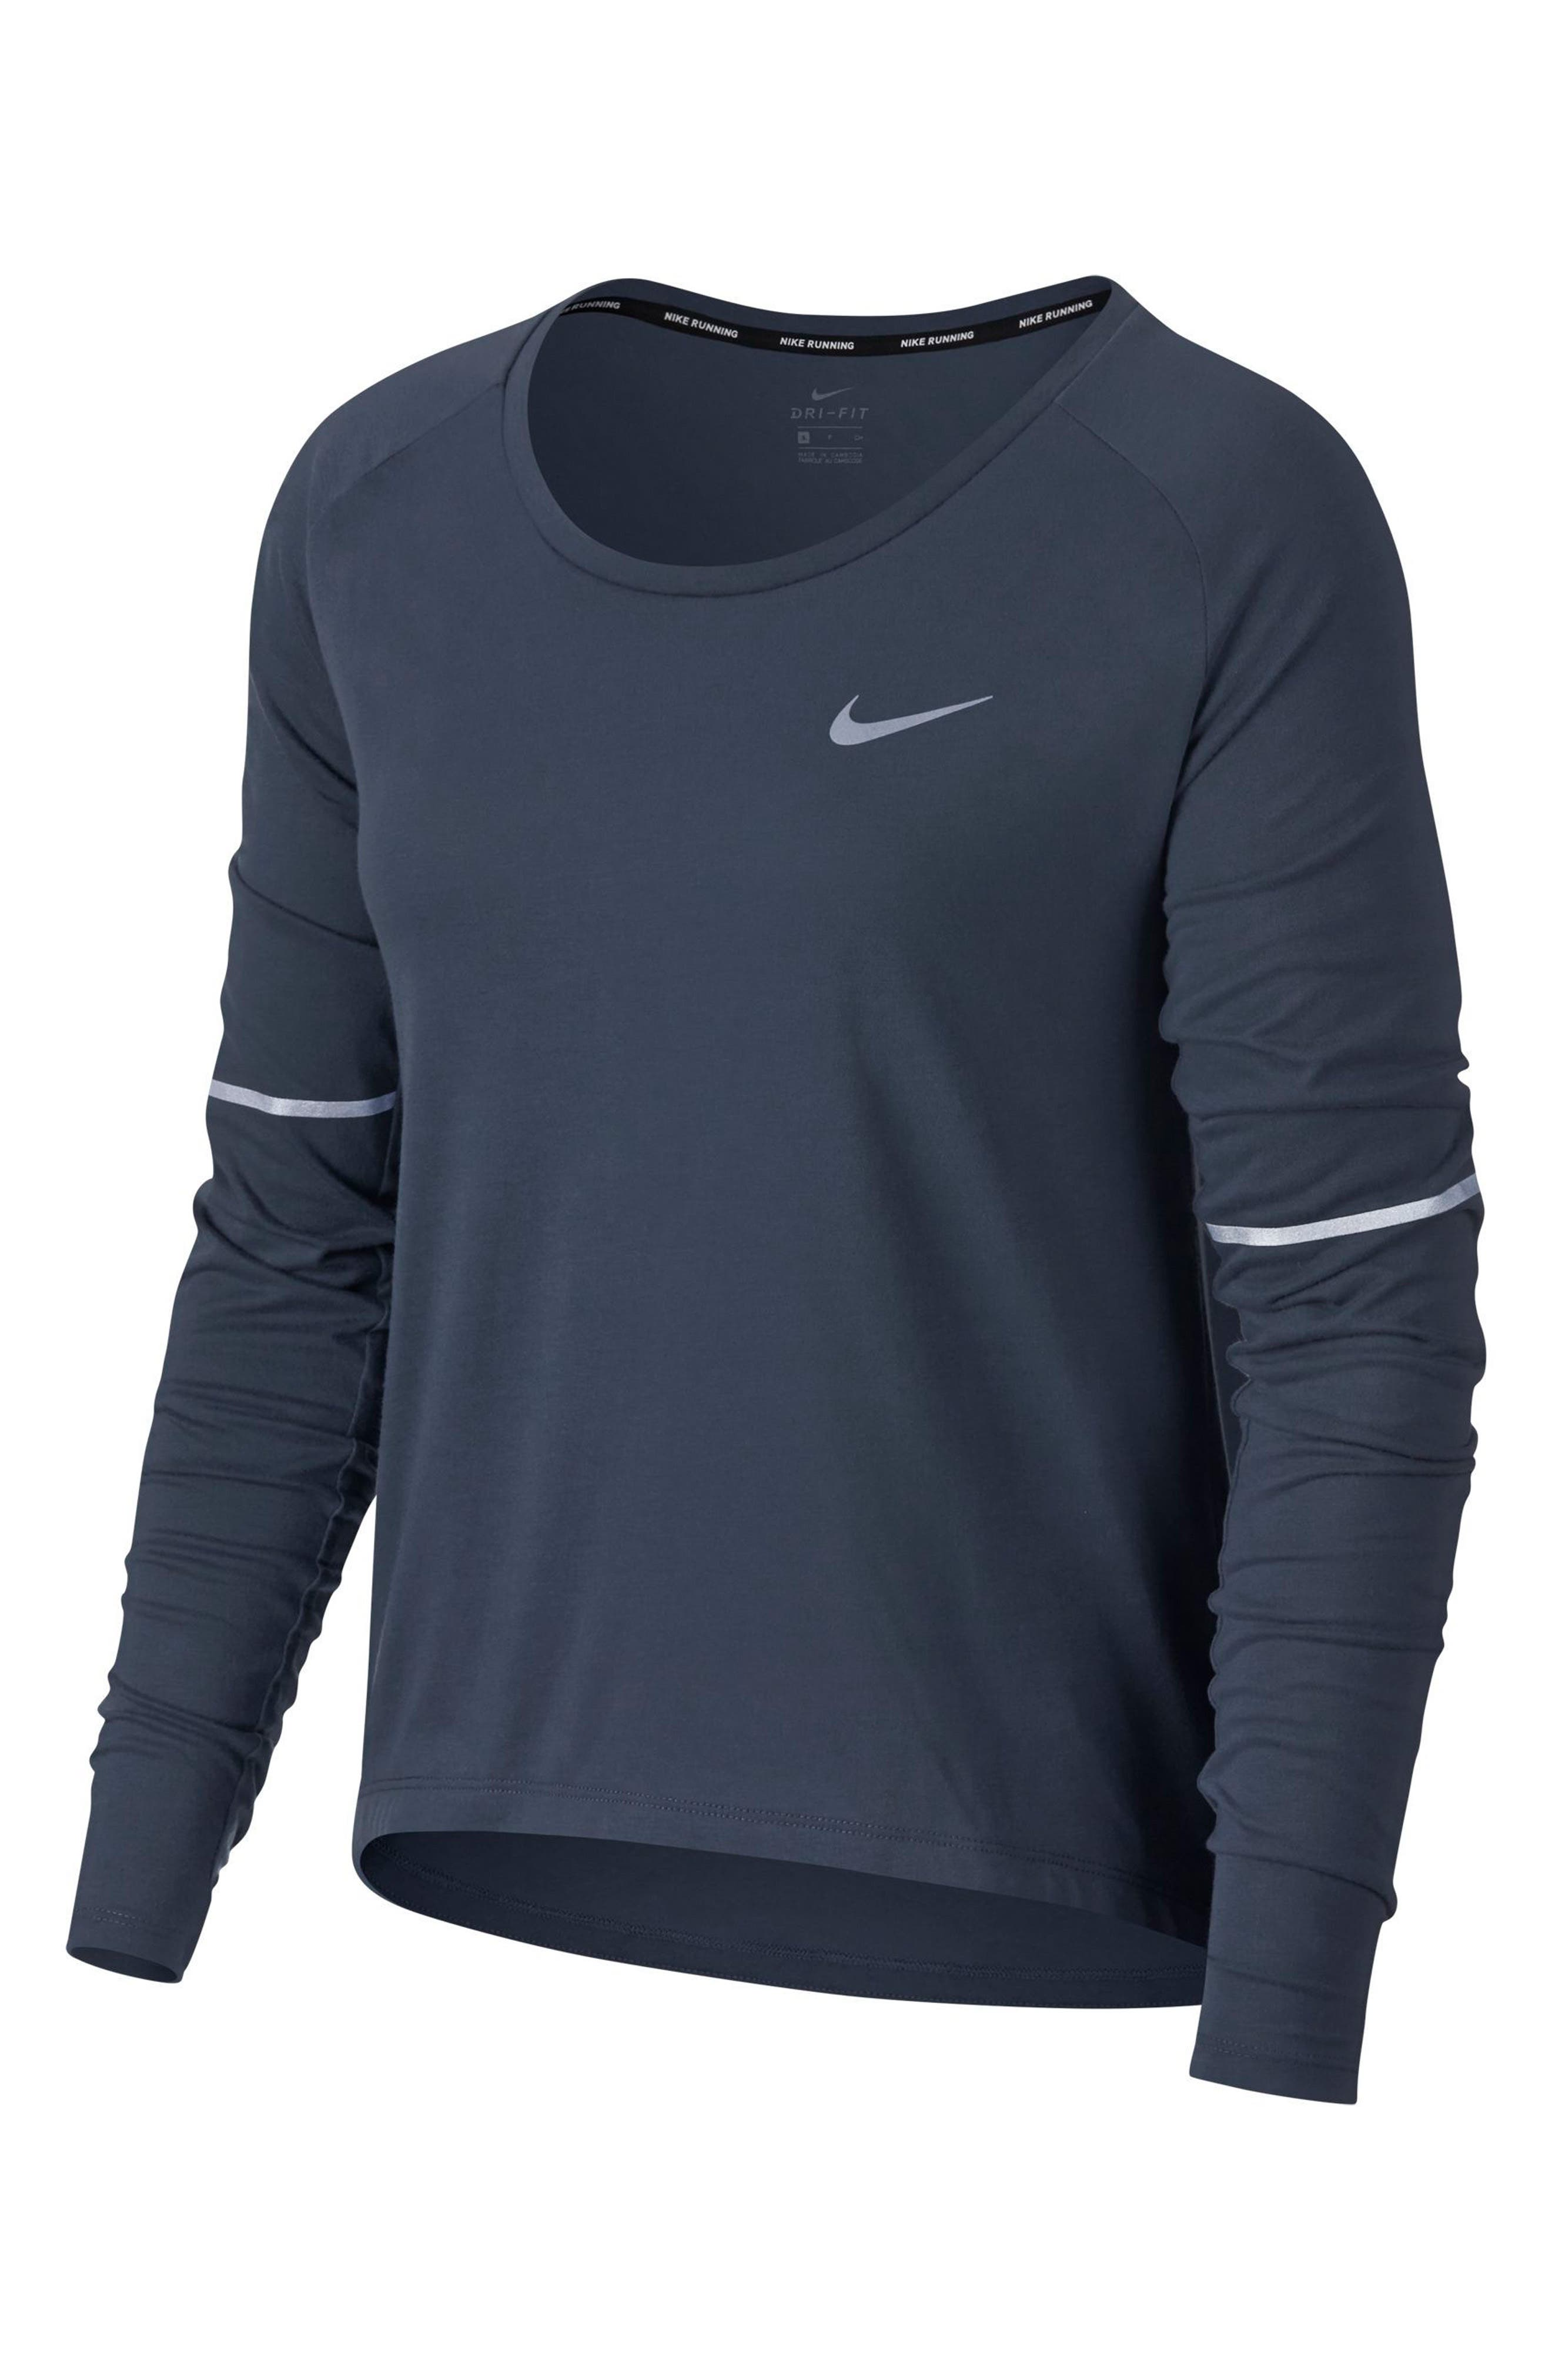 Main Image - Nike Breathe Women's Running Top